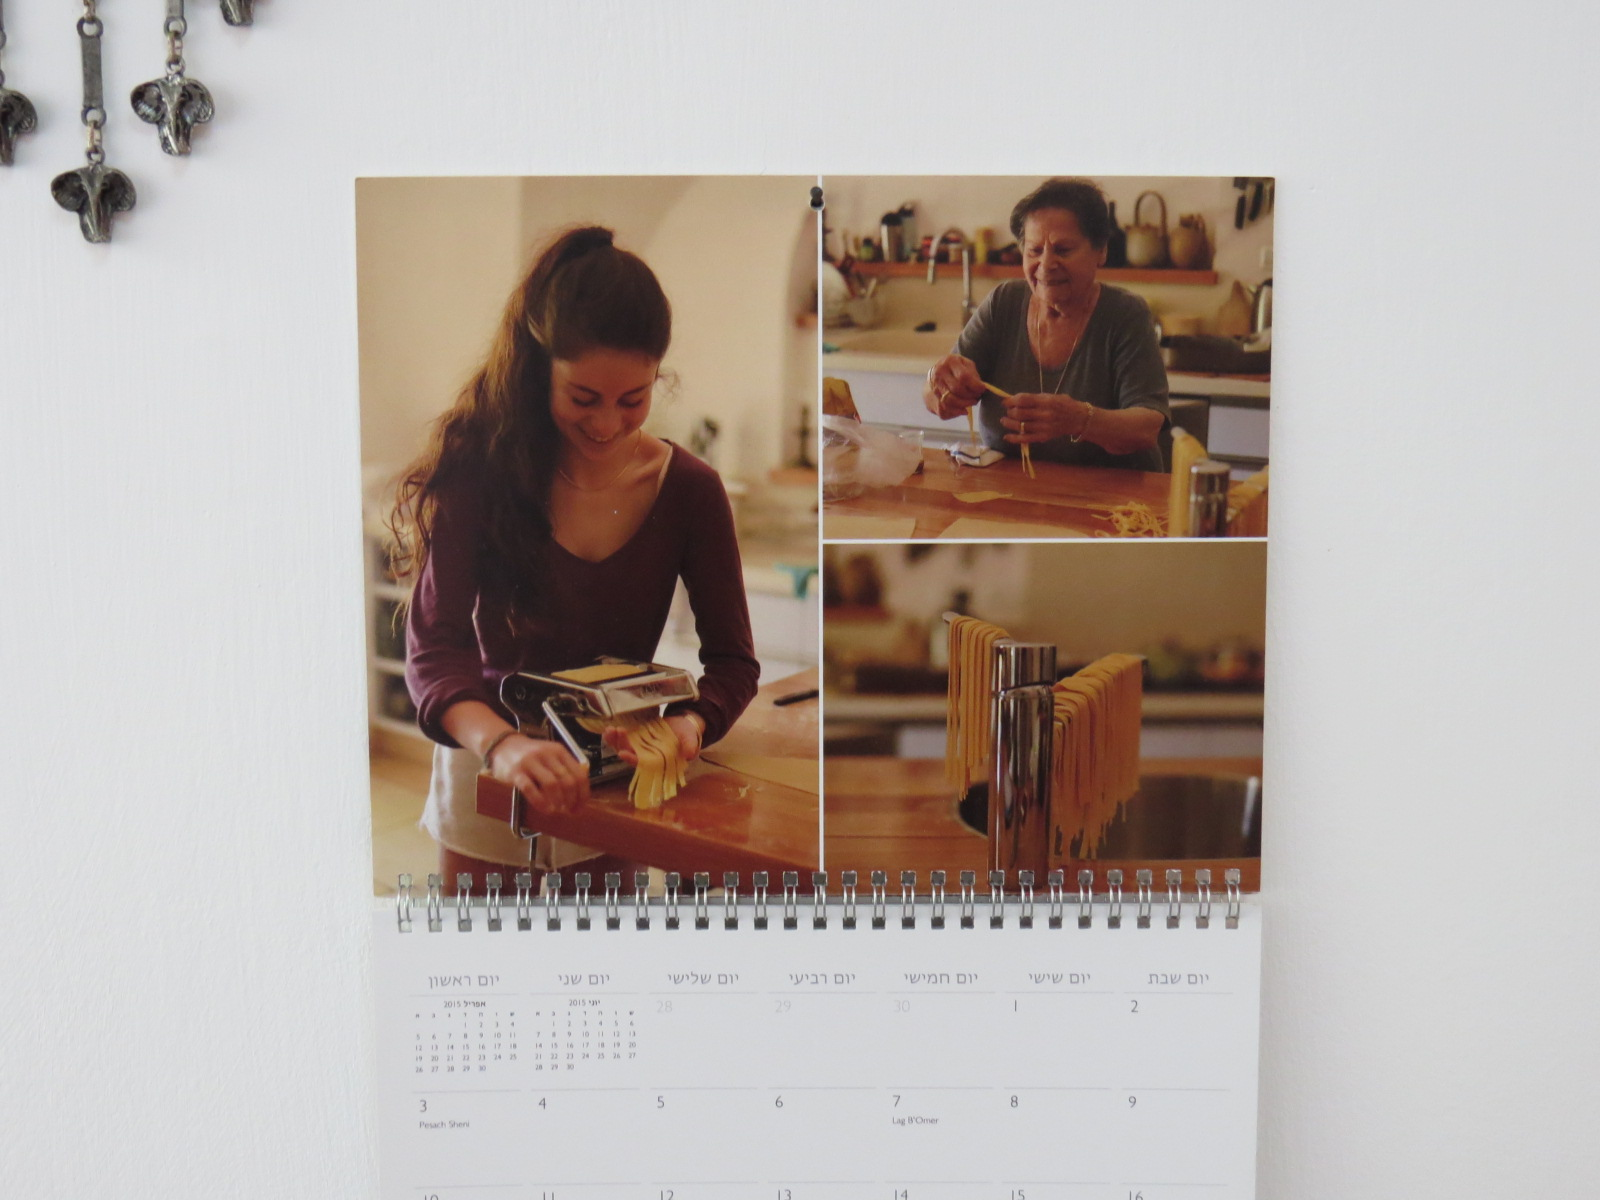 Rina and her grand-daughter Enelle Mevorah making pasta together. The calendar was this year's birthday gift to Rina.